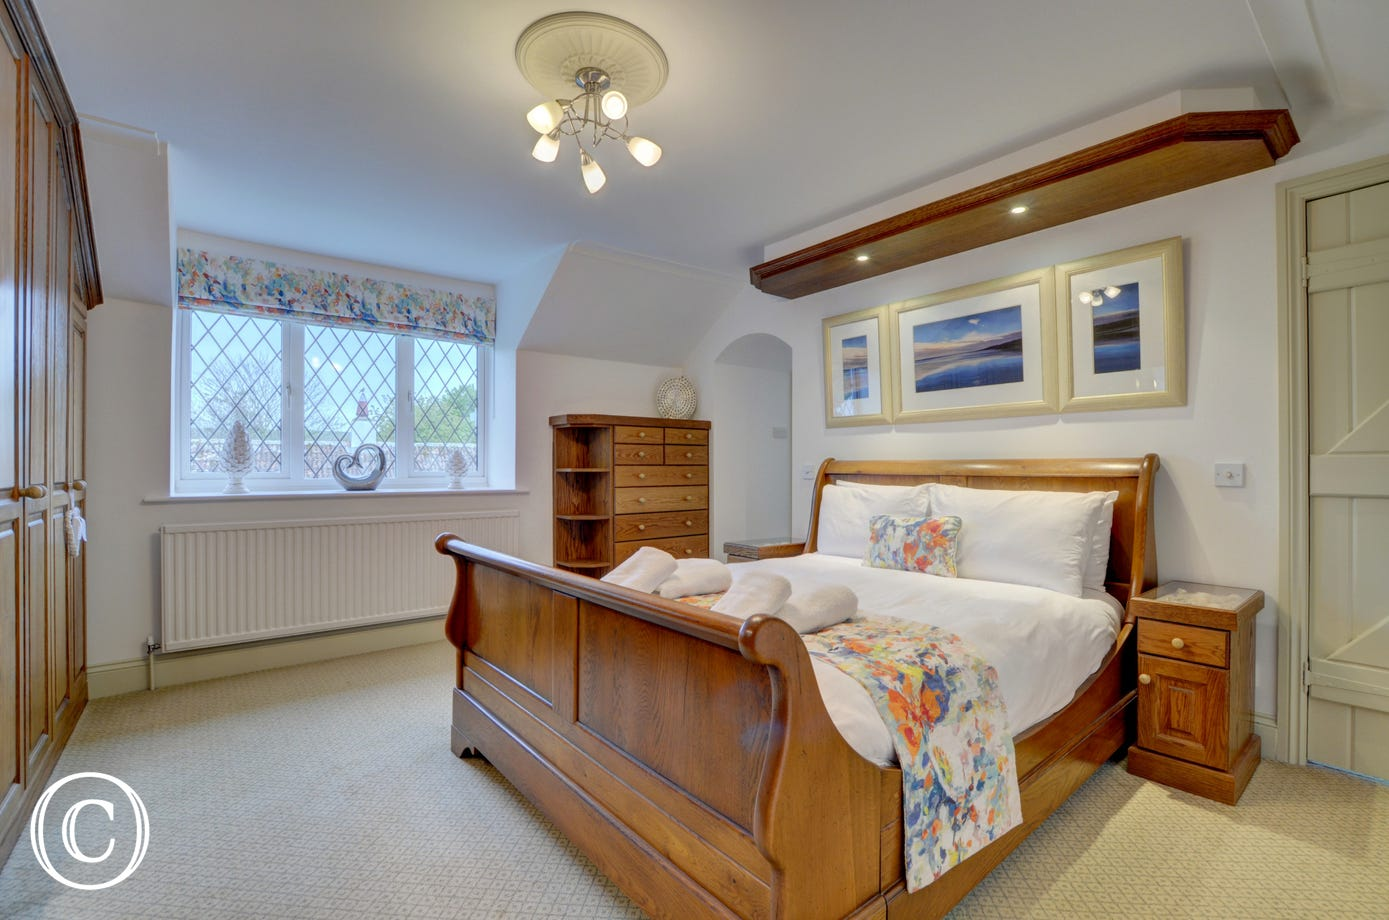 The impressive master bedroom with benefits from a spacious en suite bathroom